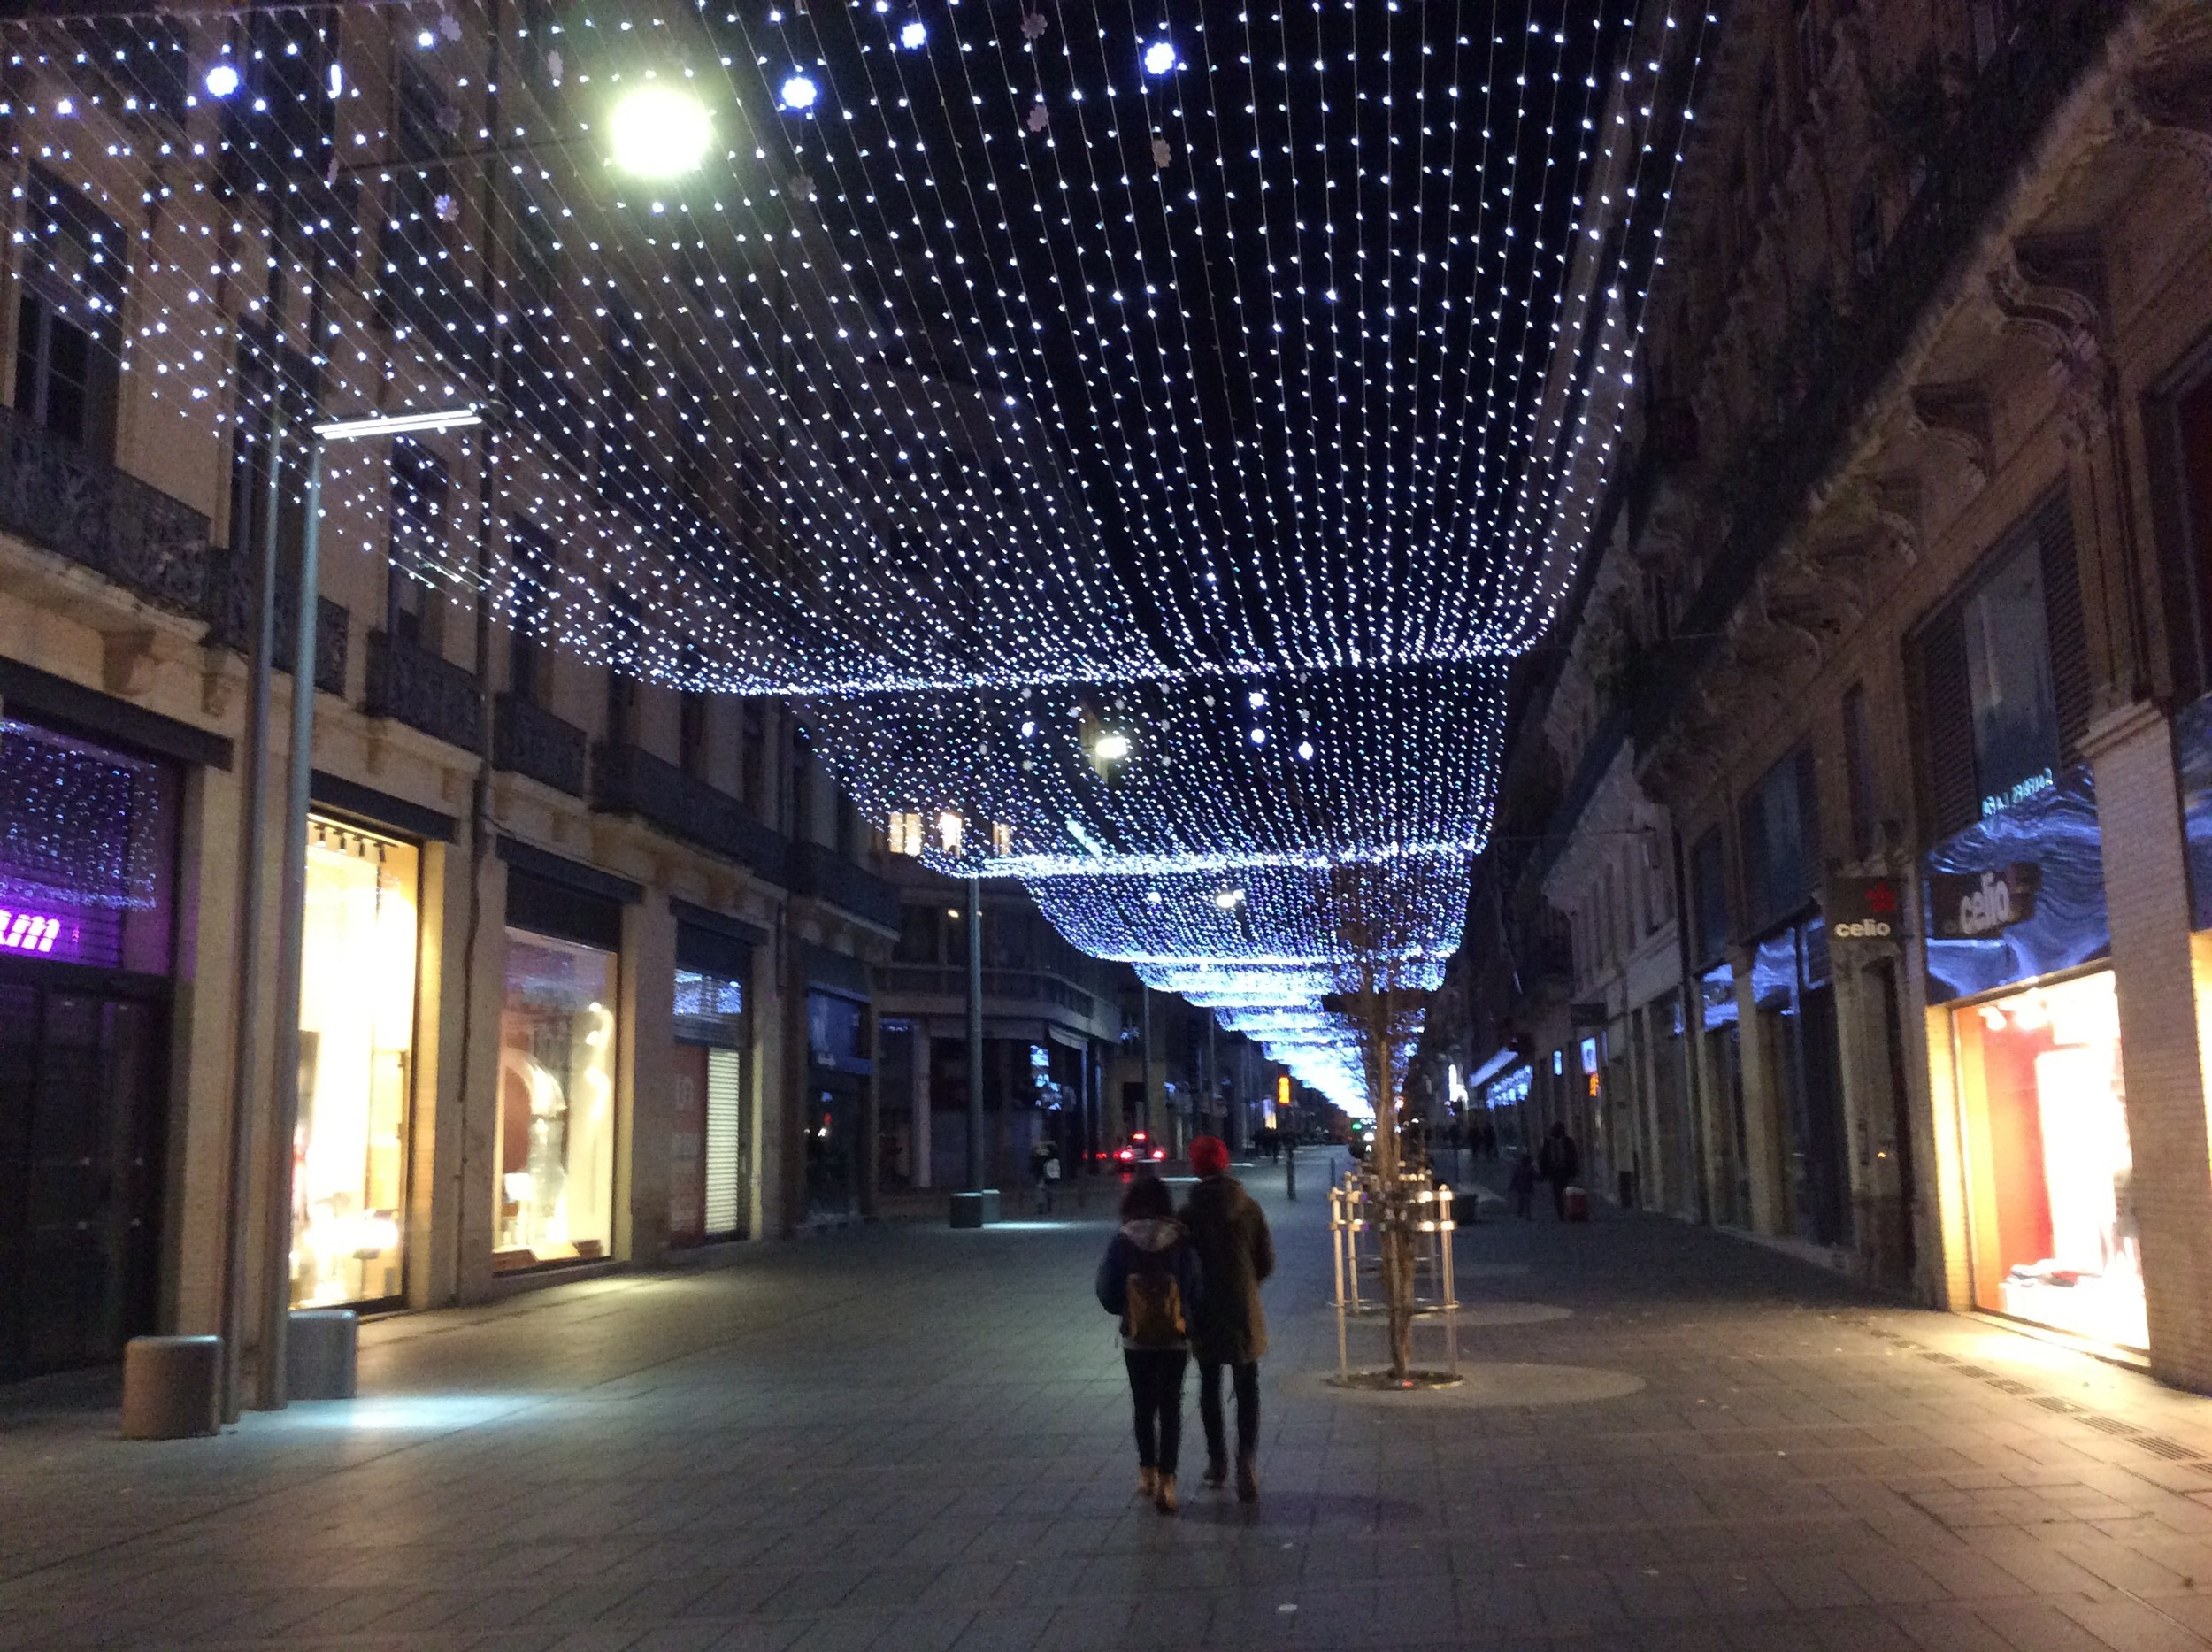 The quiet Toulouse streets at night